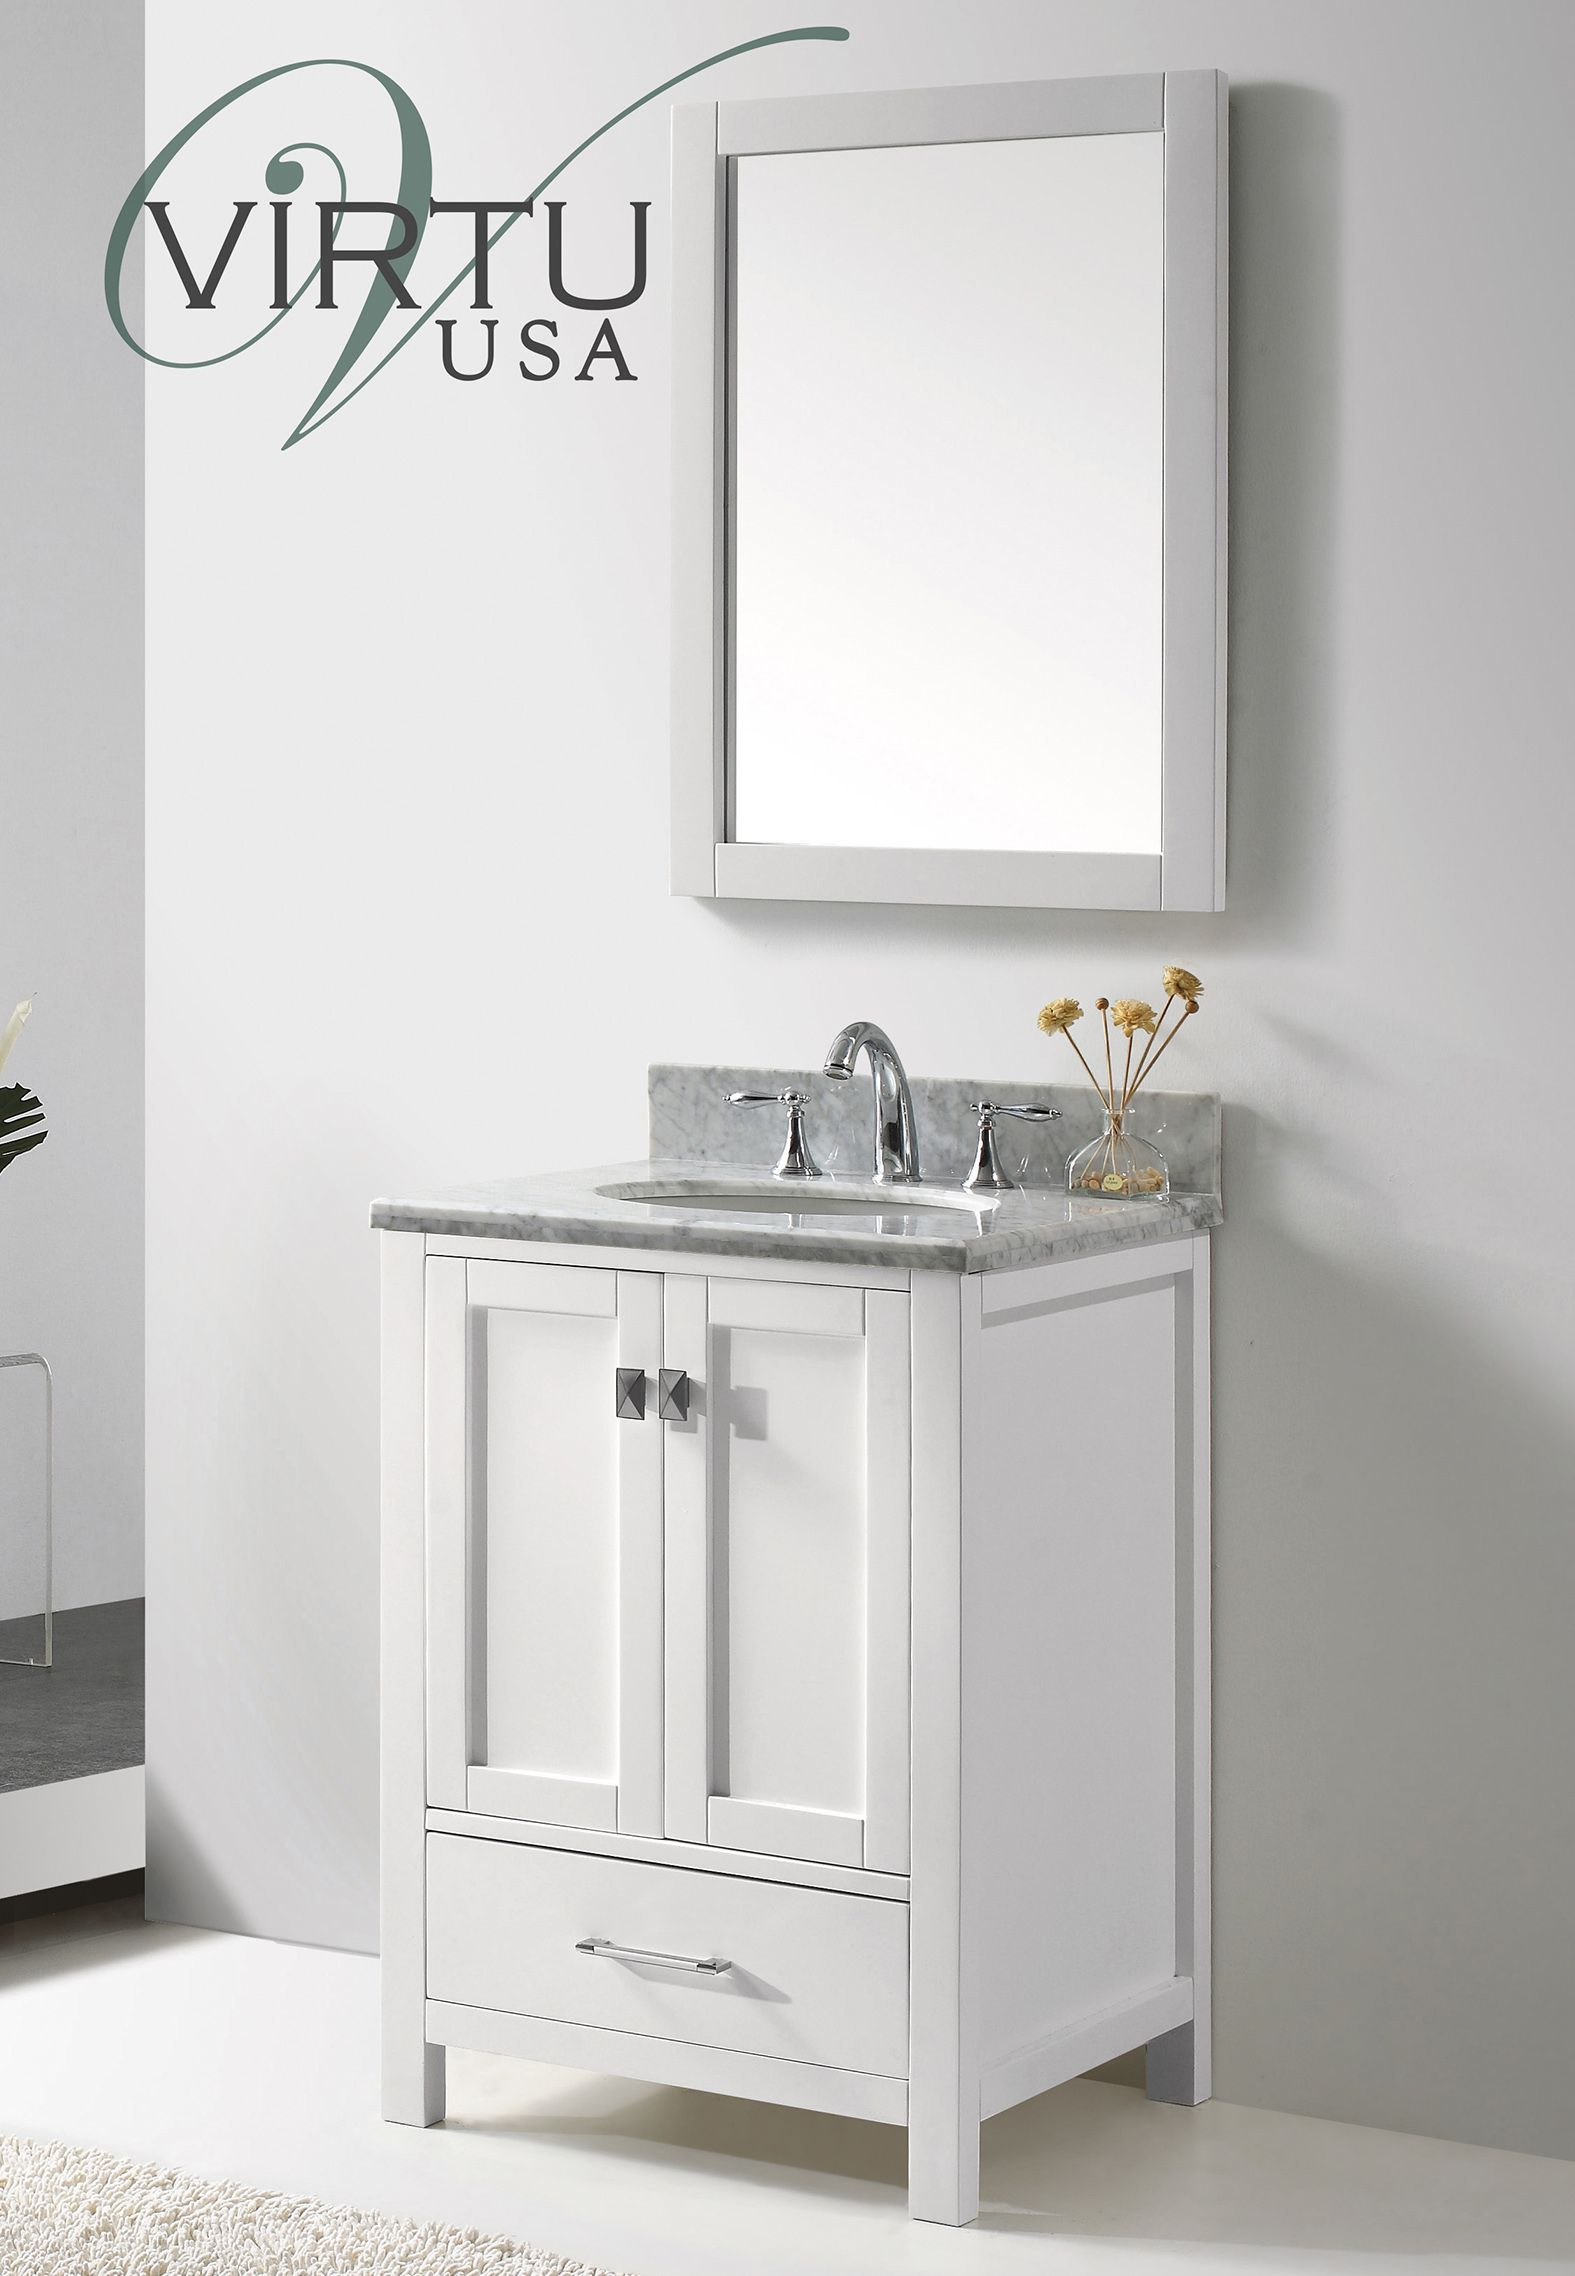 Bathroom Vanity Nashville Tn caroline avenue 24 inch contemporary bathroom vanity | bathroom